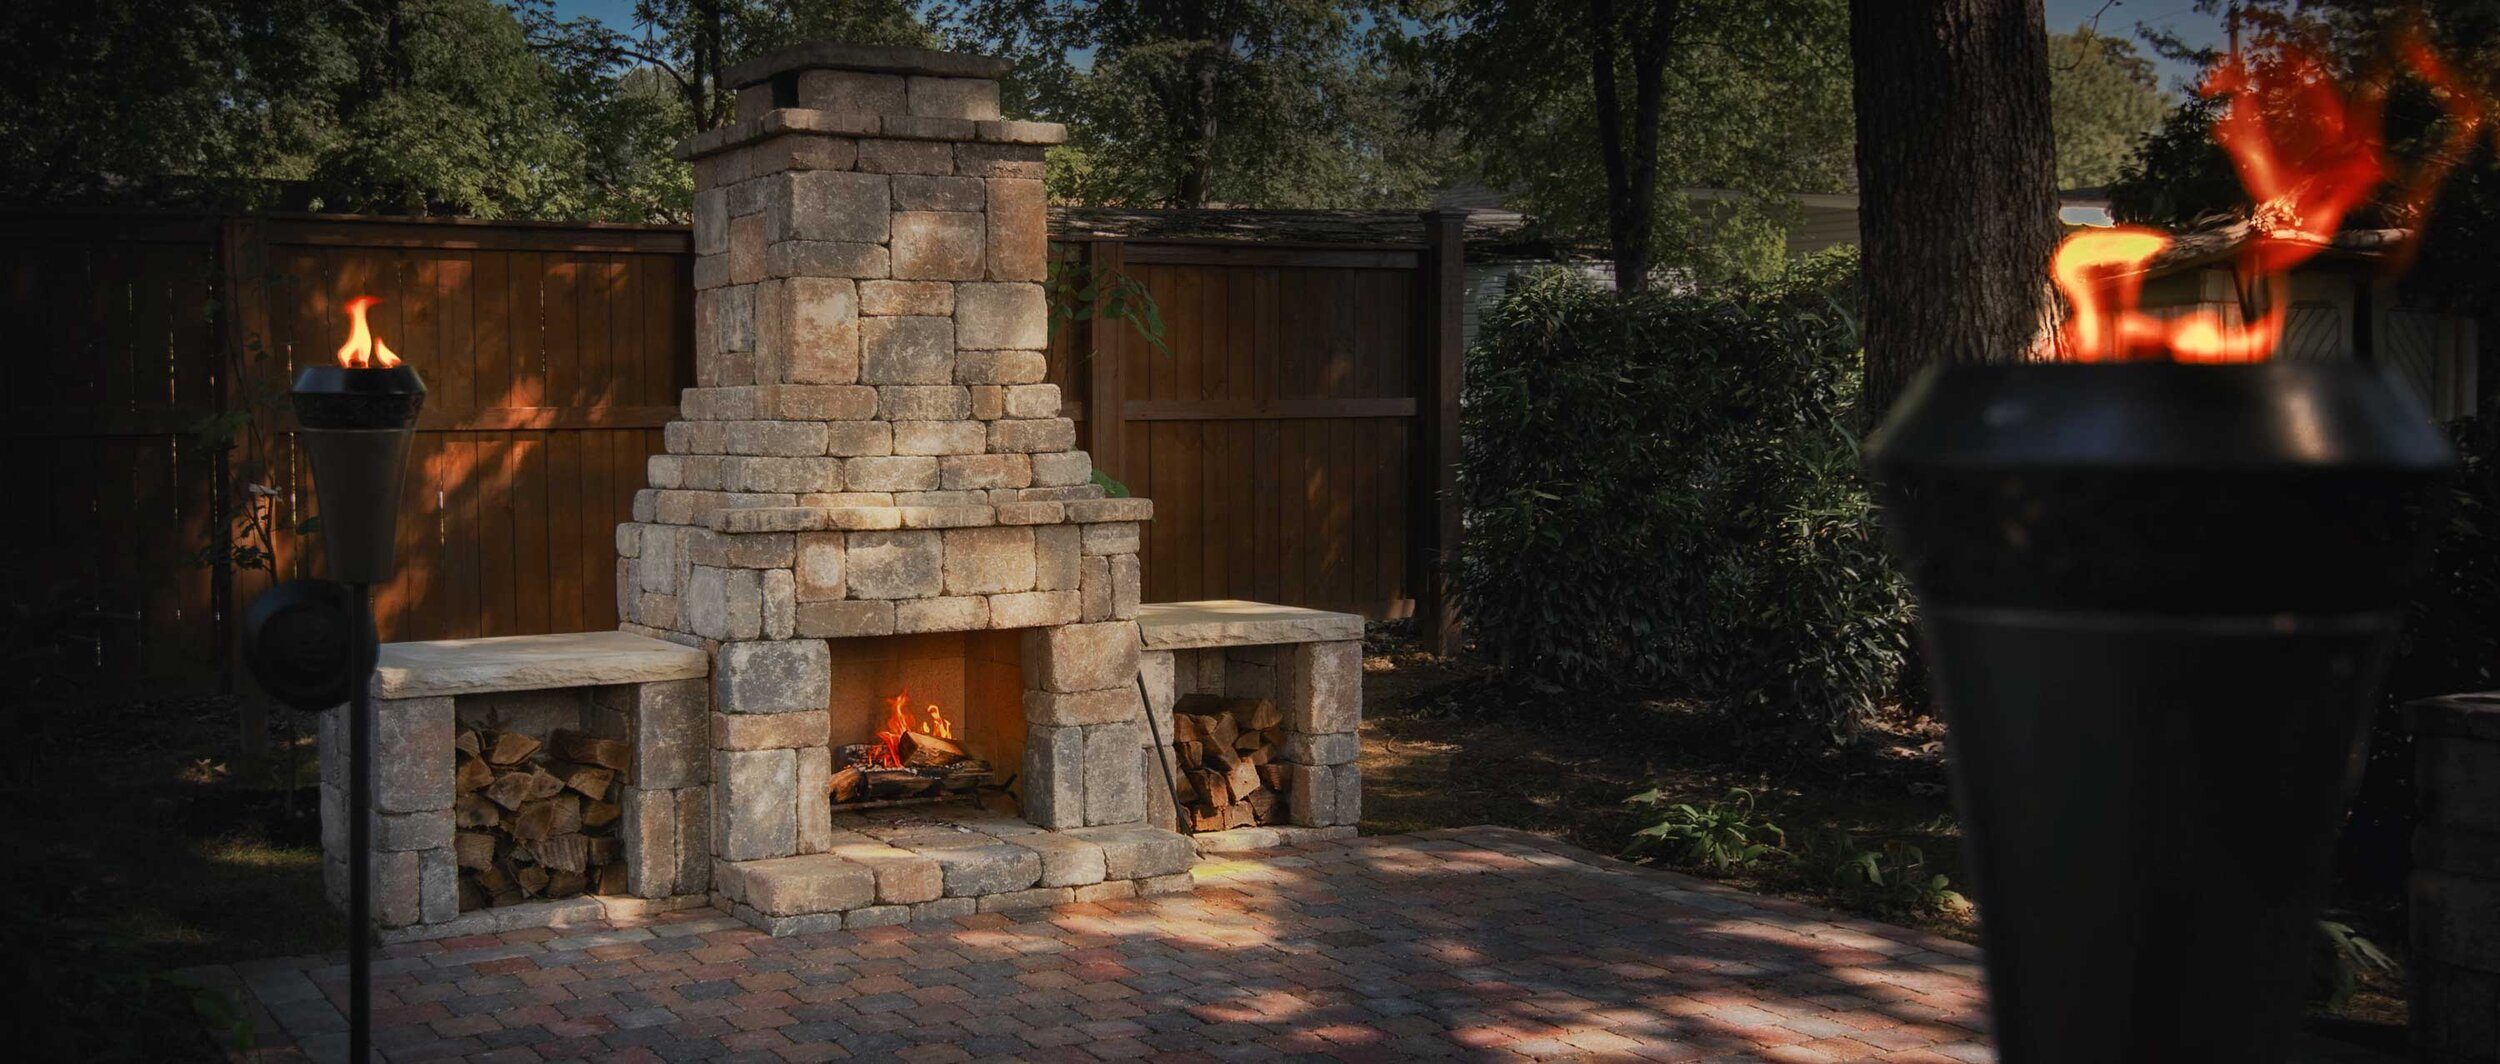 Fremont_fireplace_wood-boxes_bethany-ledge_timberwood-blend.jpg